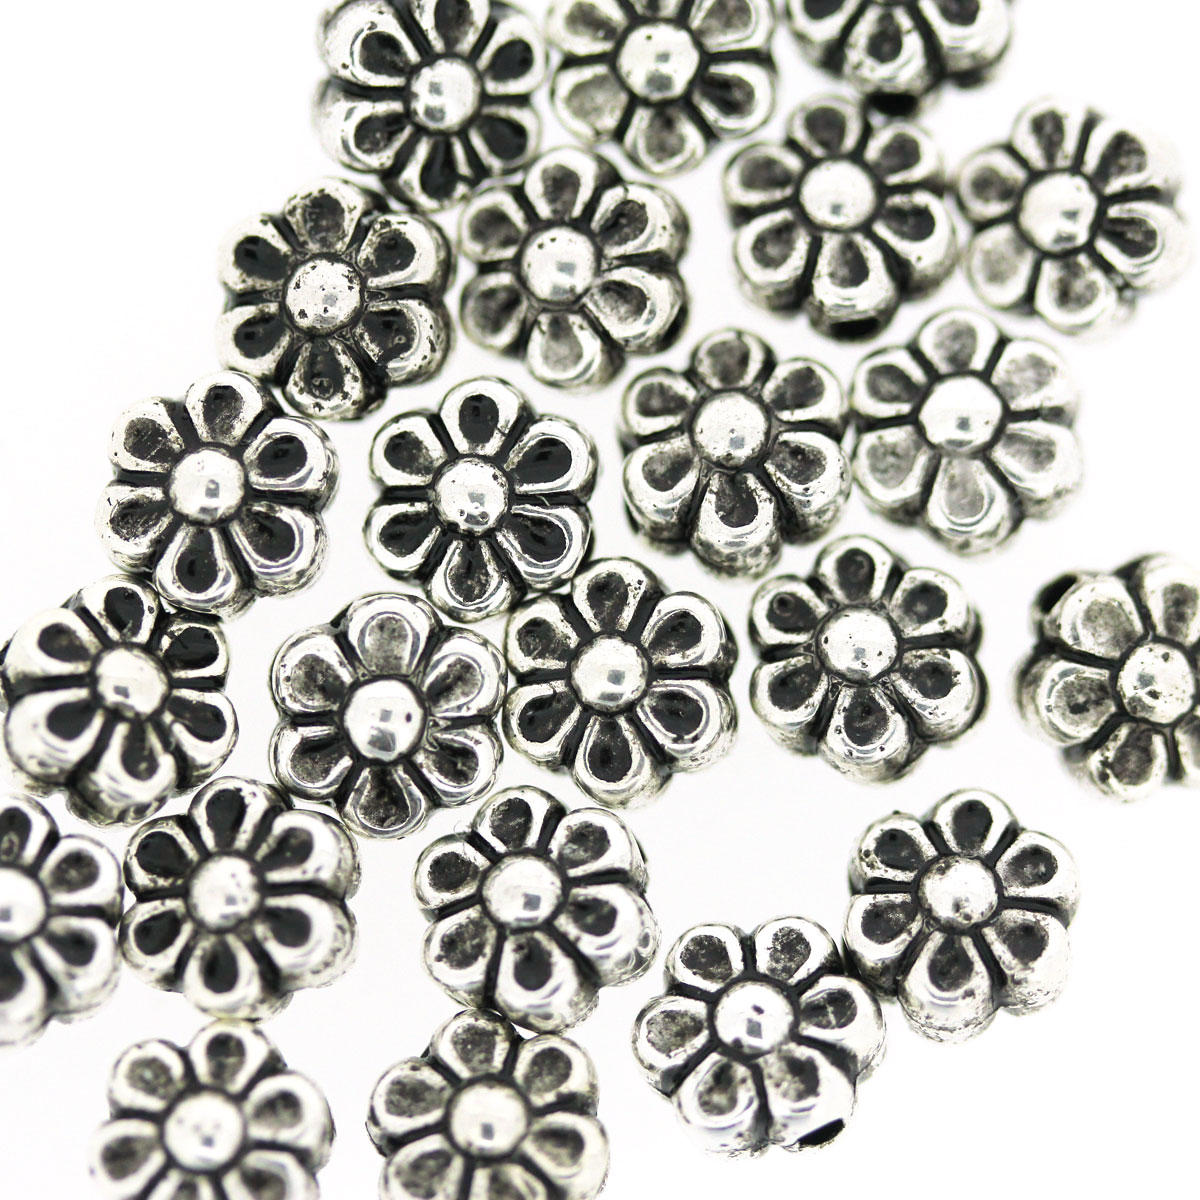 Antique Silver Delicate Daisy Bead